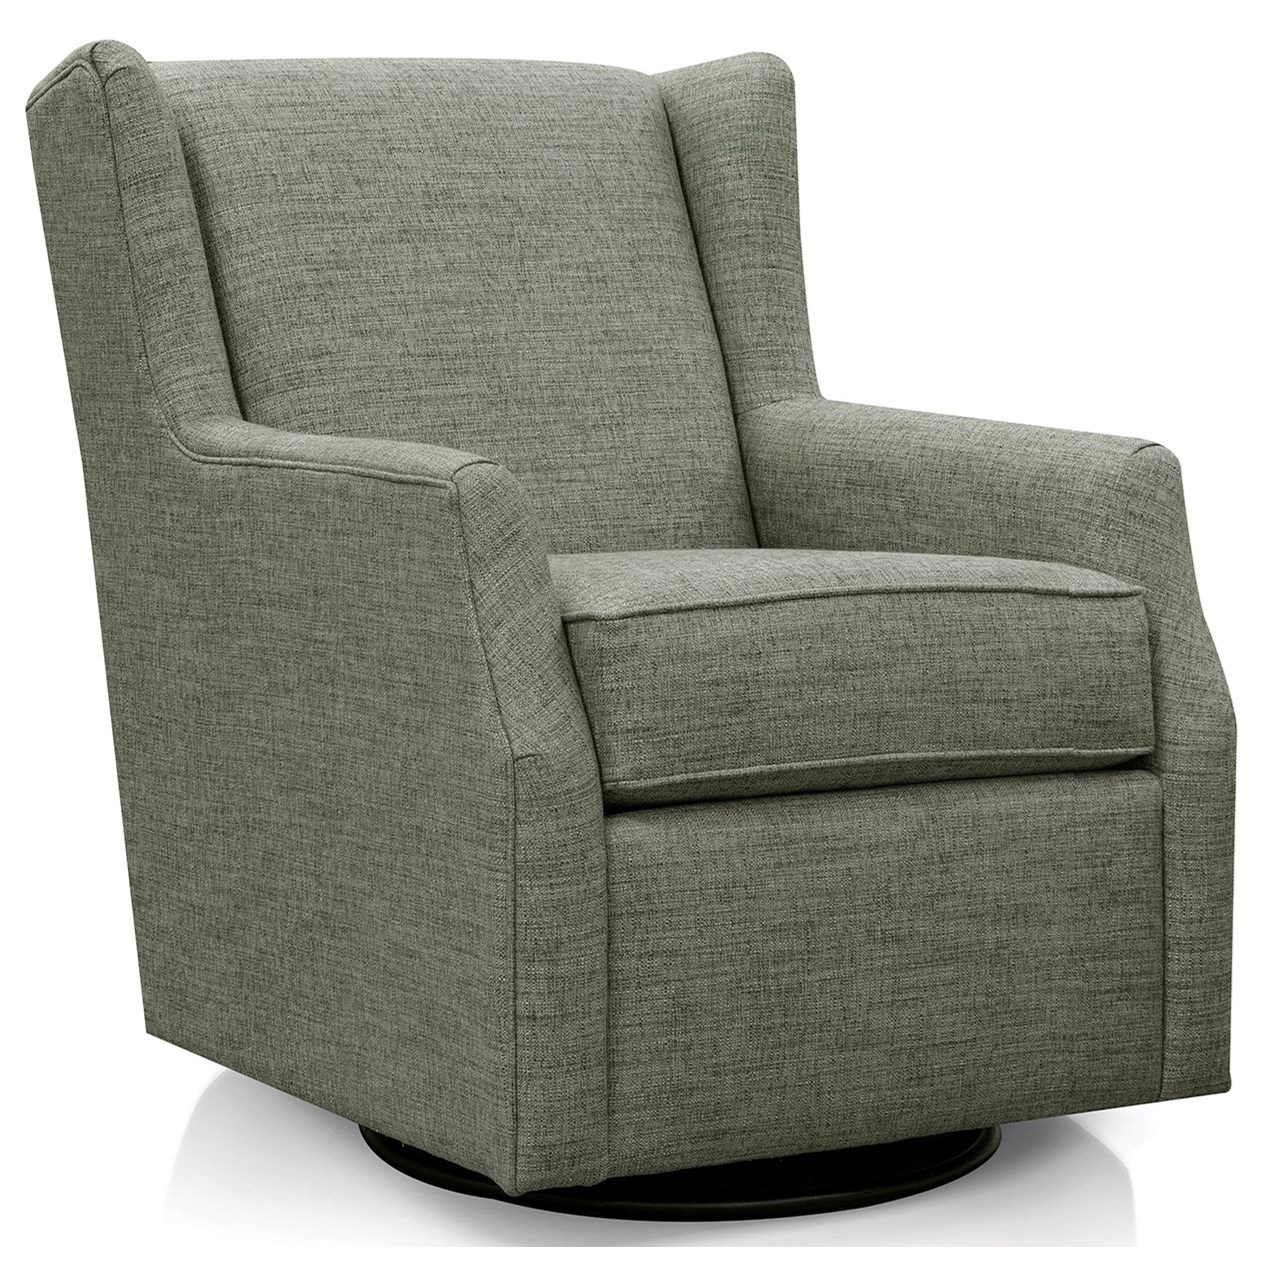 Allie Swivel Glider Chair by England at EFO Furniture Outlet